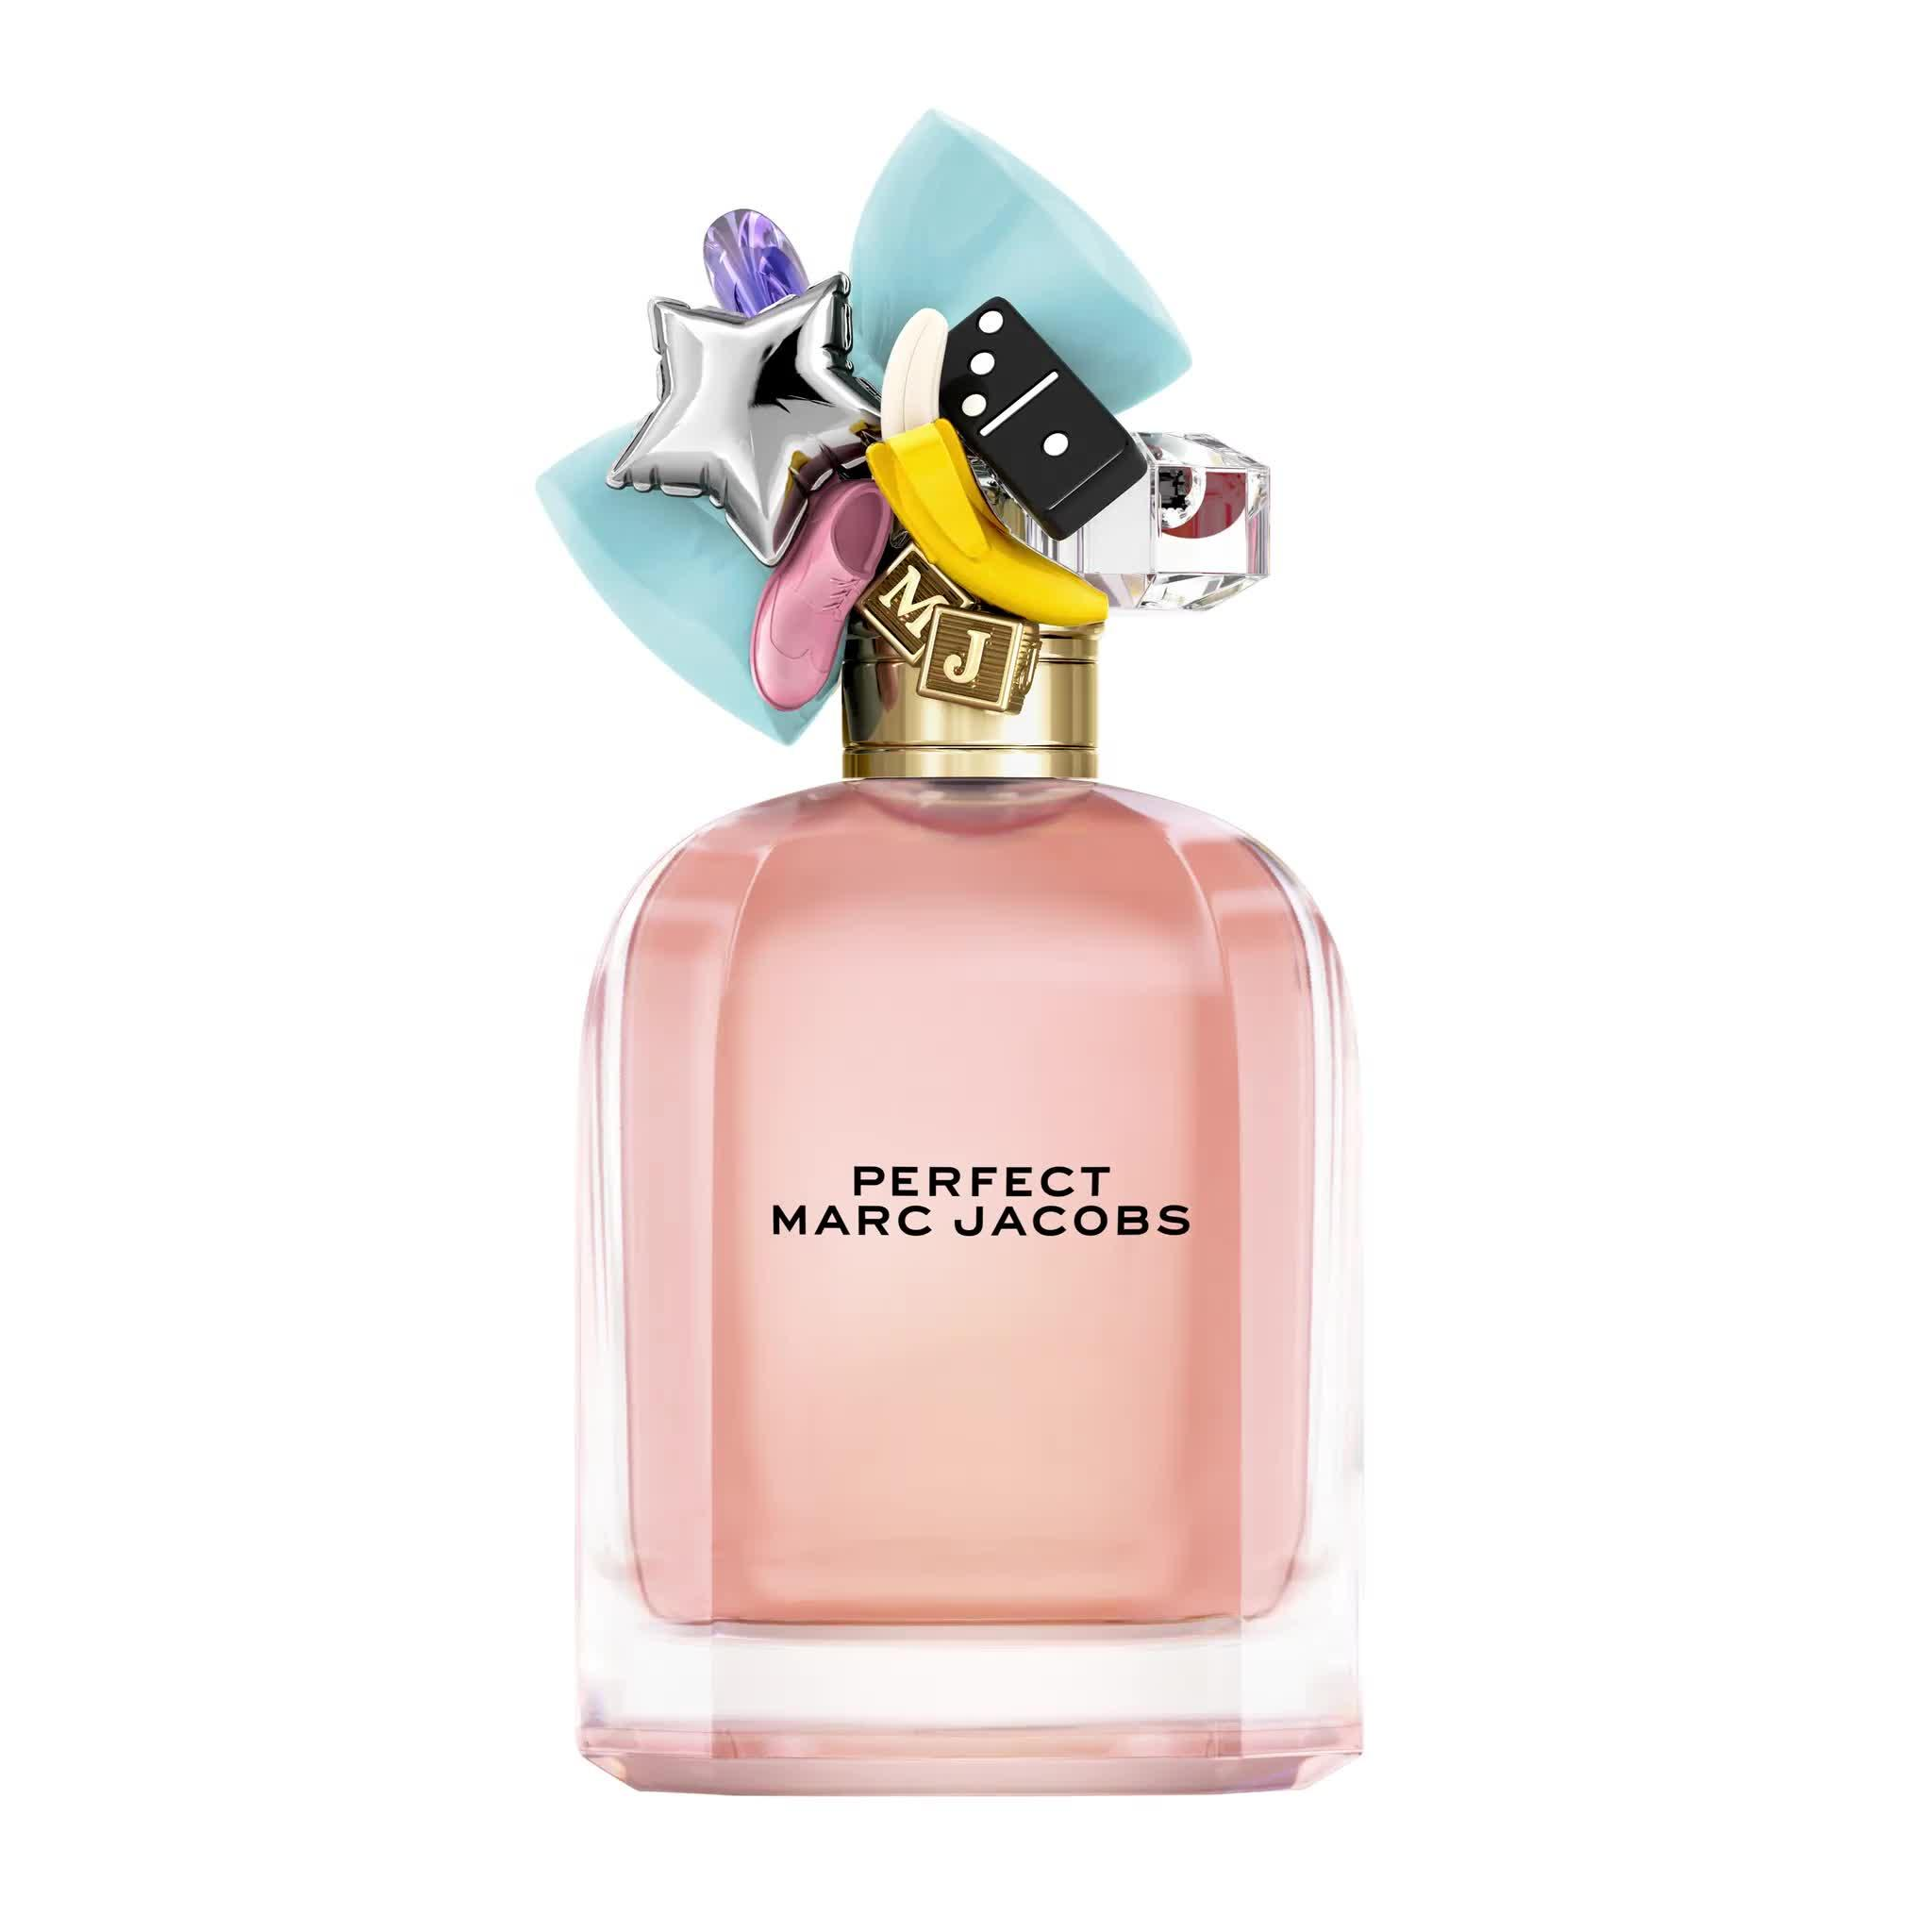 marc-jacobs-perfect-edp-orchard.vn